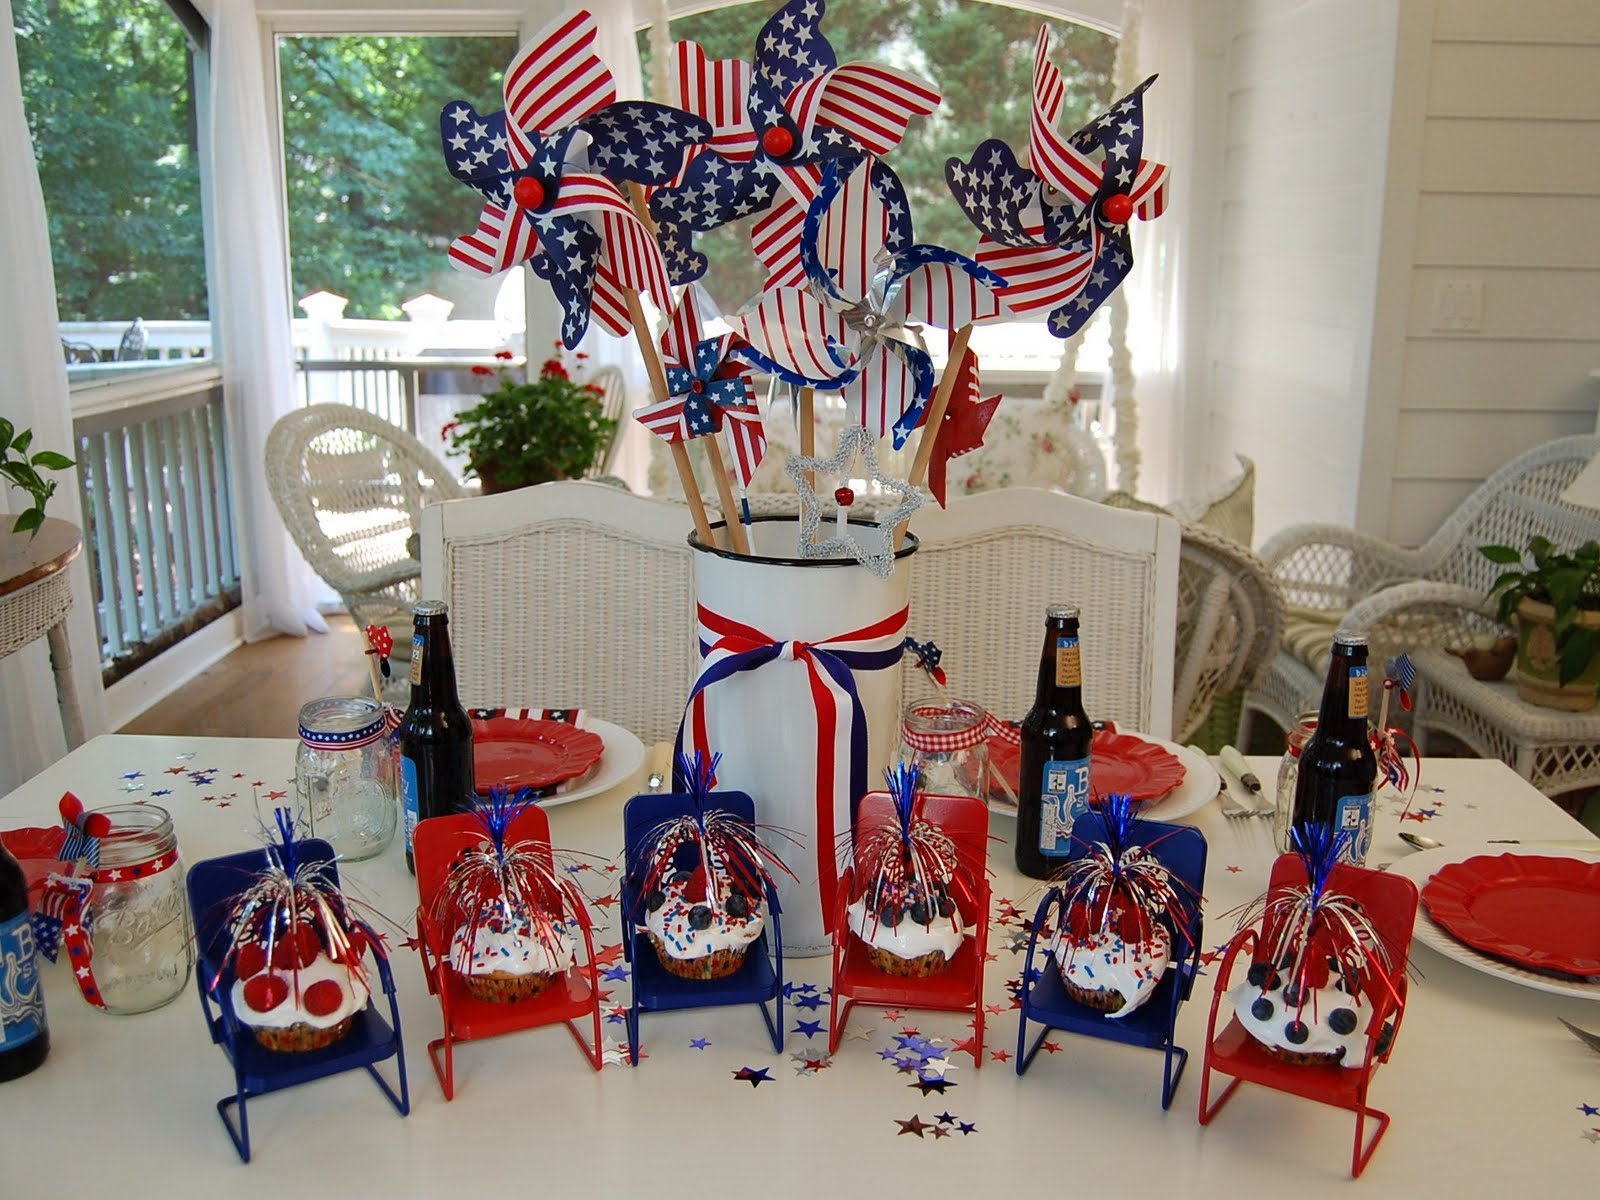 A Patriotic Celebration Table Setting Between Naps On The Porch